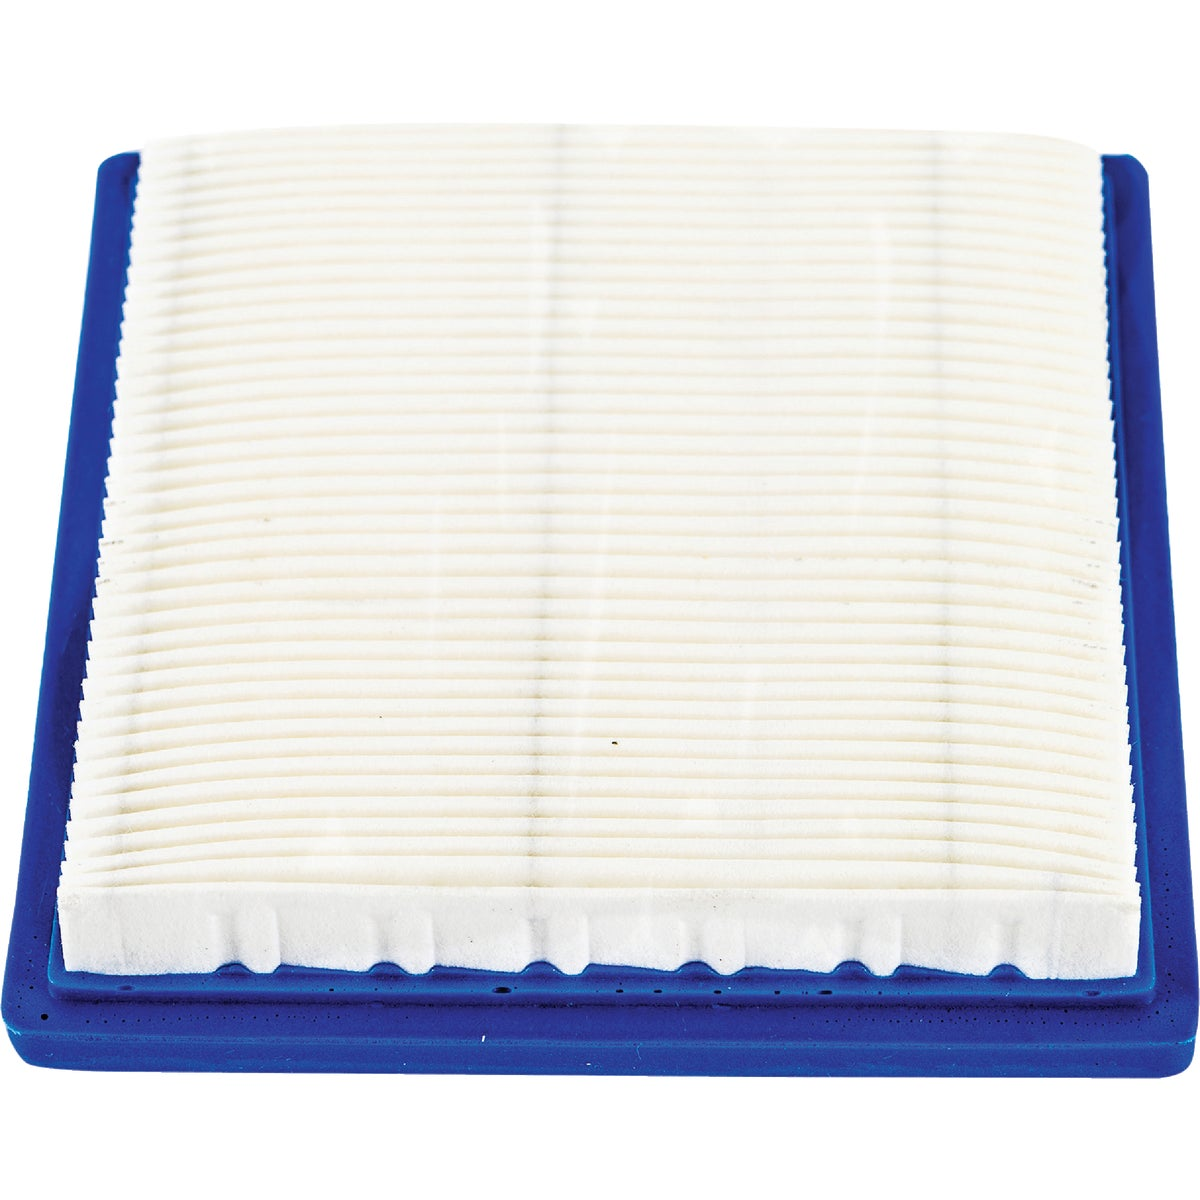 B&S AIR FILTER - BAF-115 by Arnold Corp